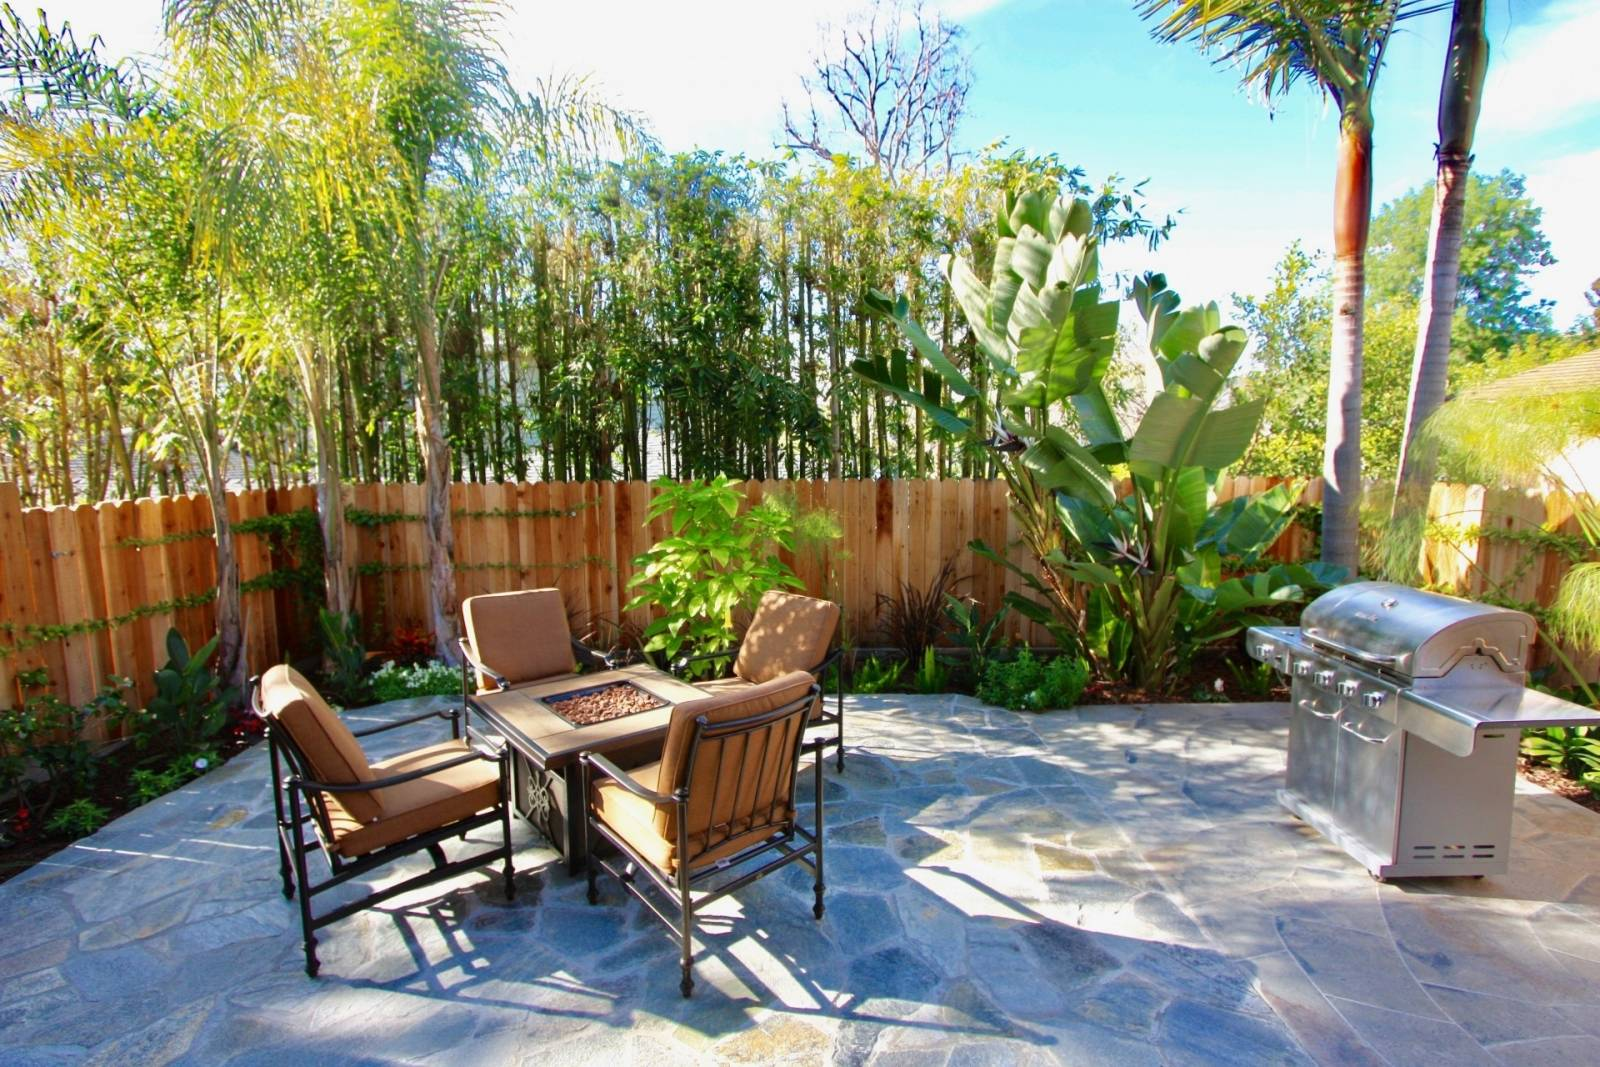 value online for cottages cottage laguna here direct rentals beach lobby gallery book hotel best house